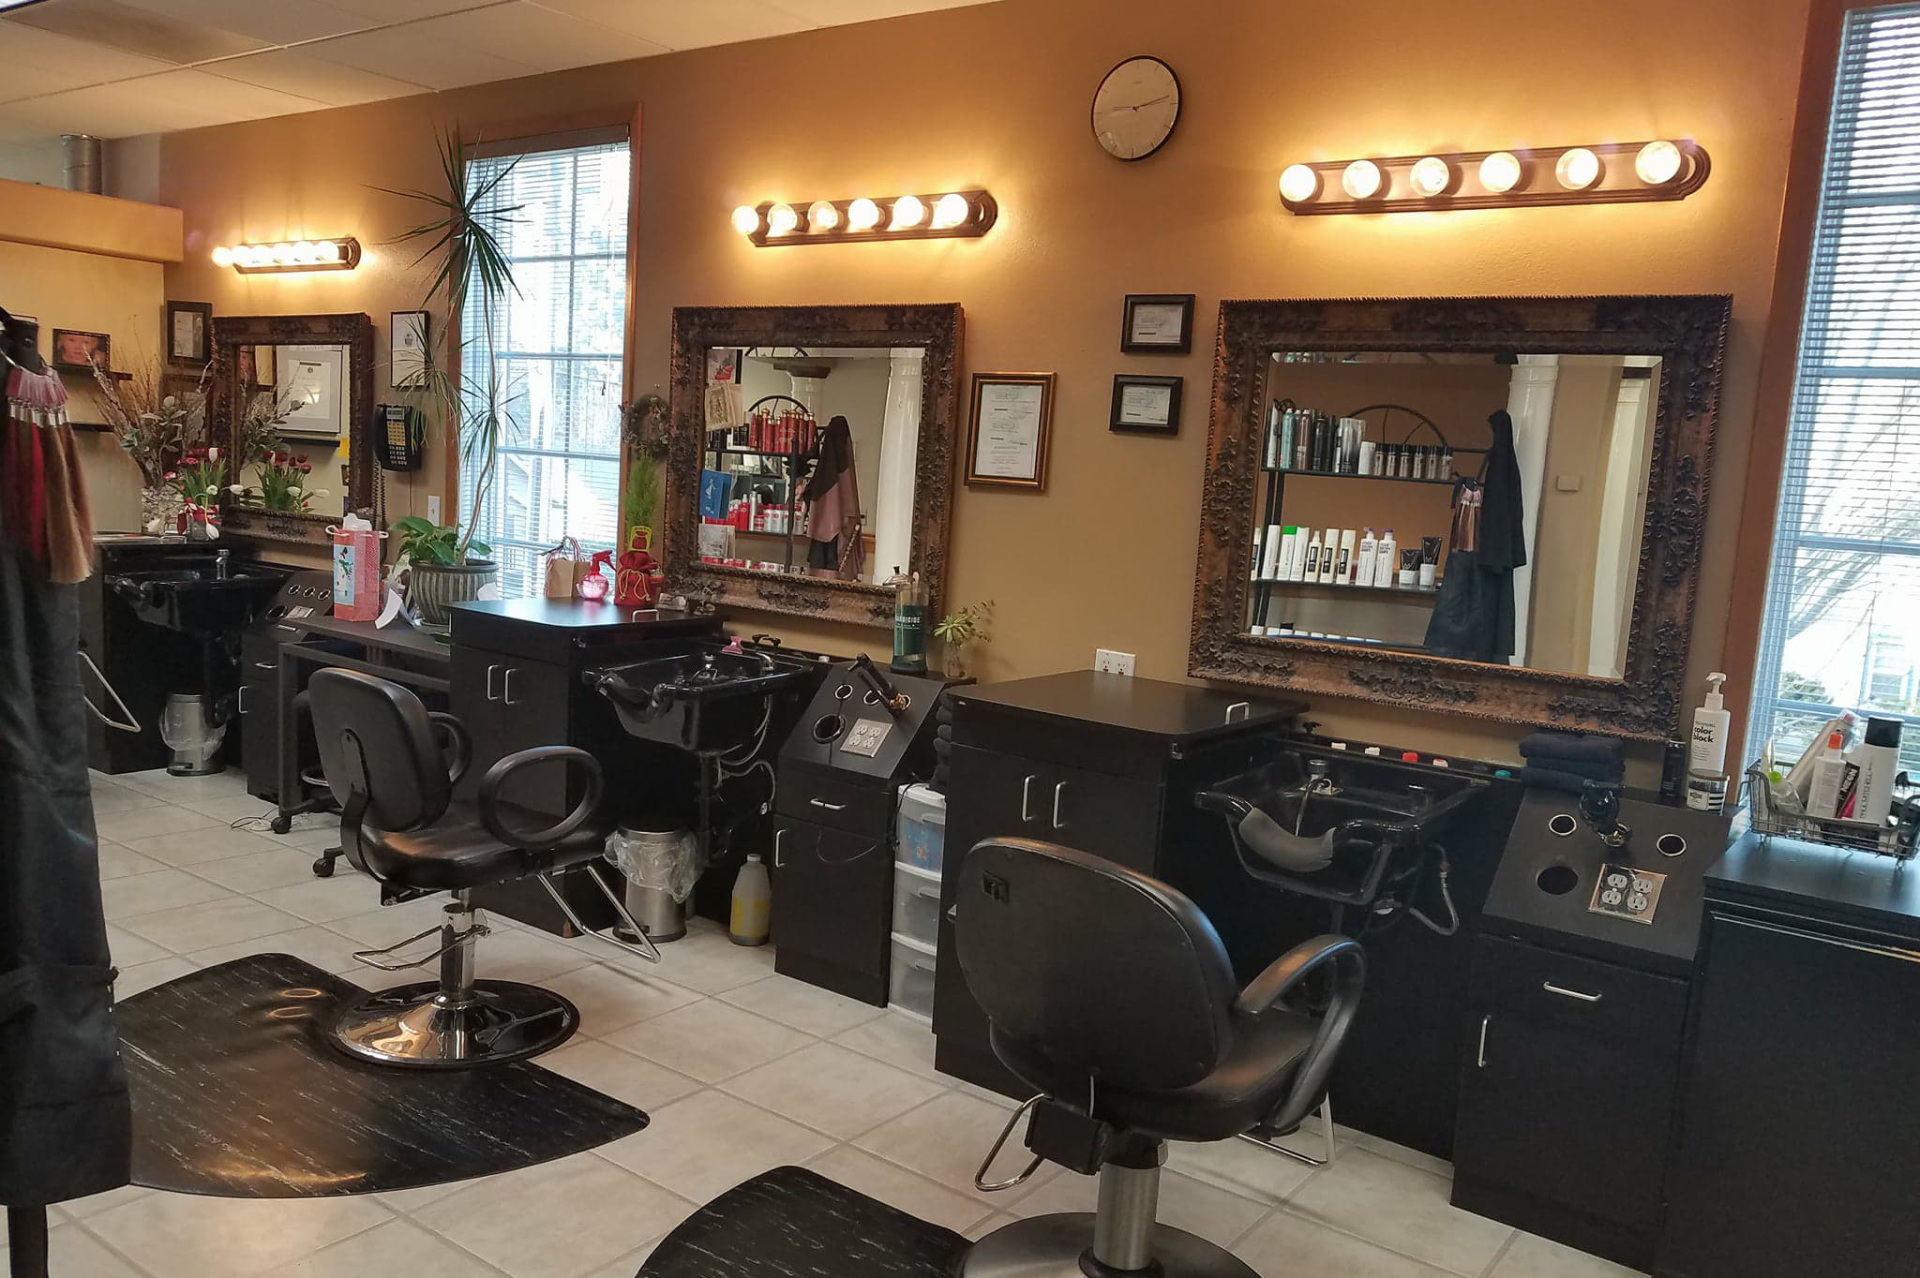 Full beauty HAIR SALON